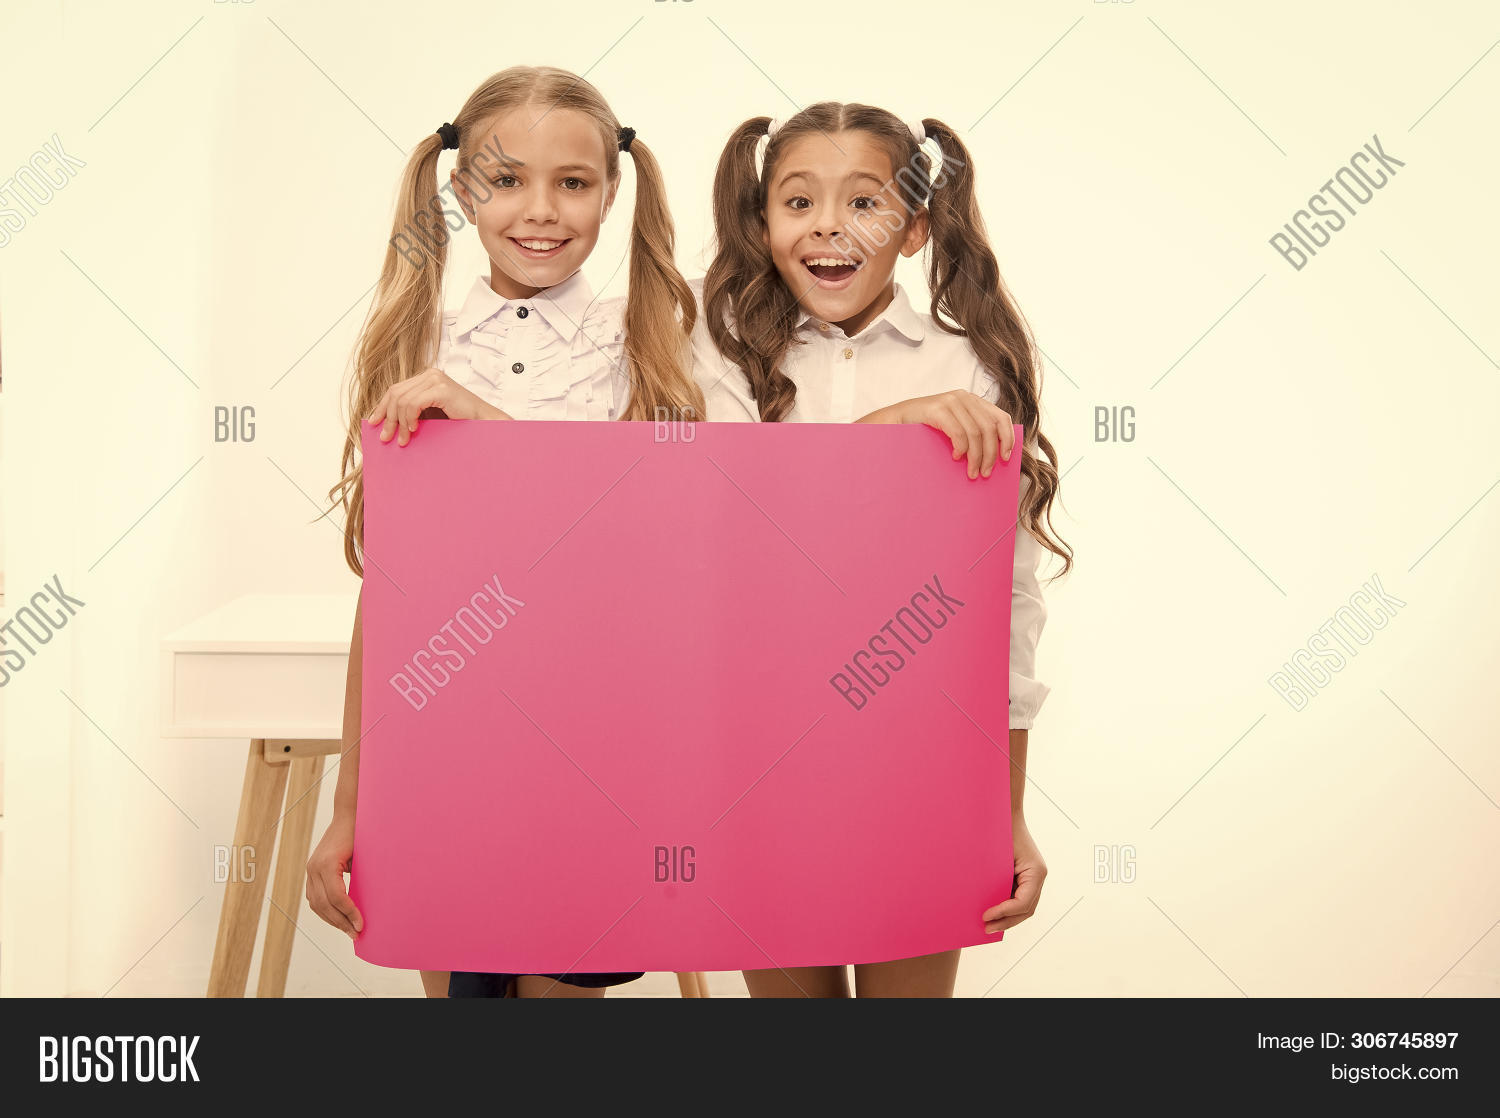 ads,advertise,advertisement,advertising,agency,background,banner,blank,child,childhood,children,concept,copy,creative,design,girls,good,hands,happiness,happy,hold,information,kid,little,marketing,media,message,news,paper,pink,poster,pupils,school,schoolgirls,sisters,small,smile,smiling,space,your